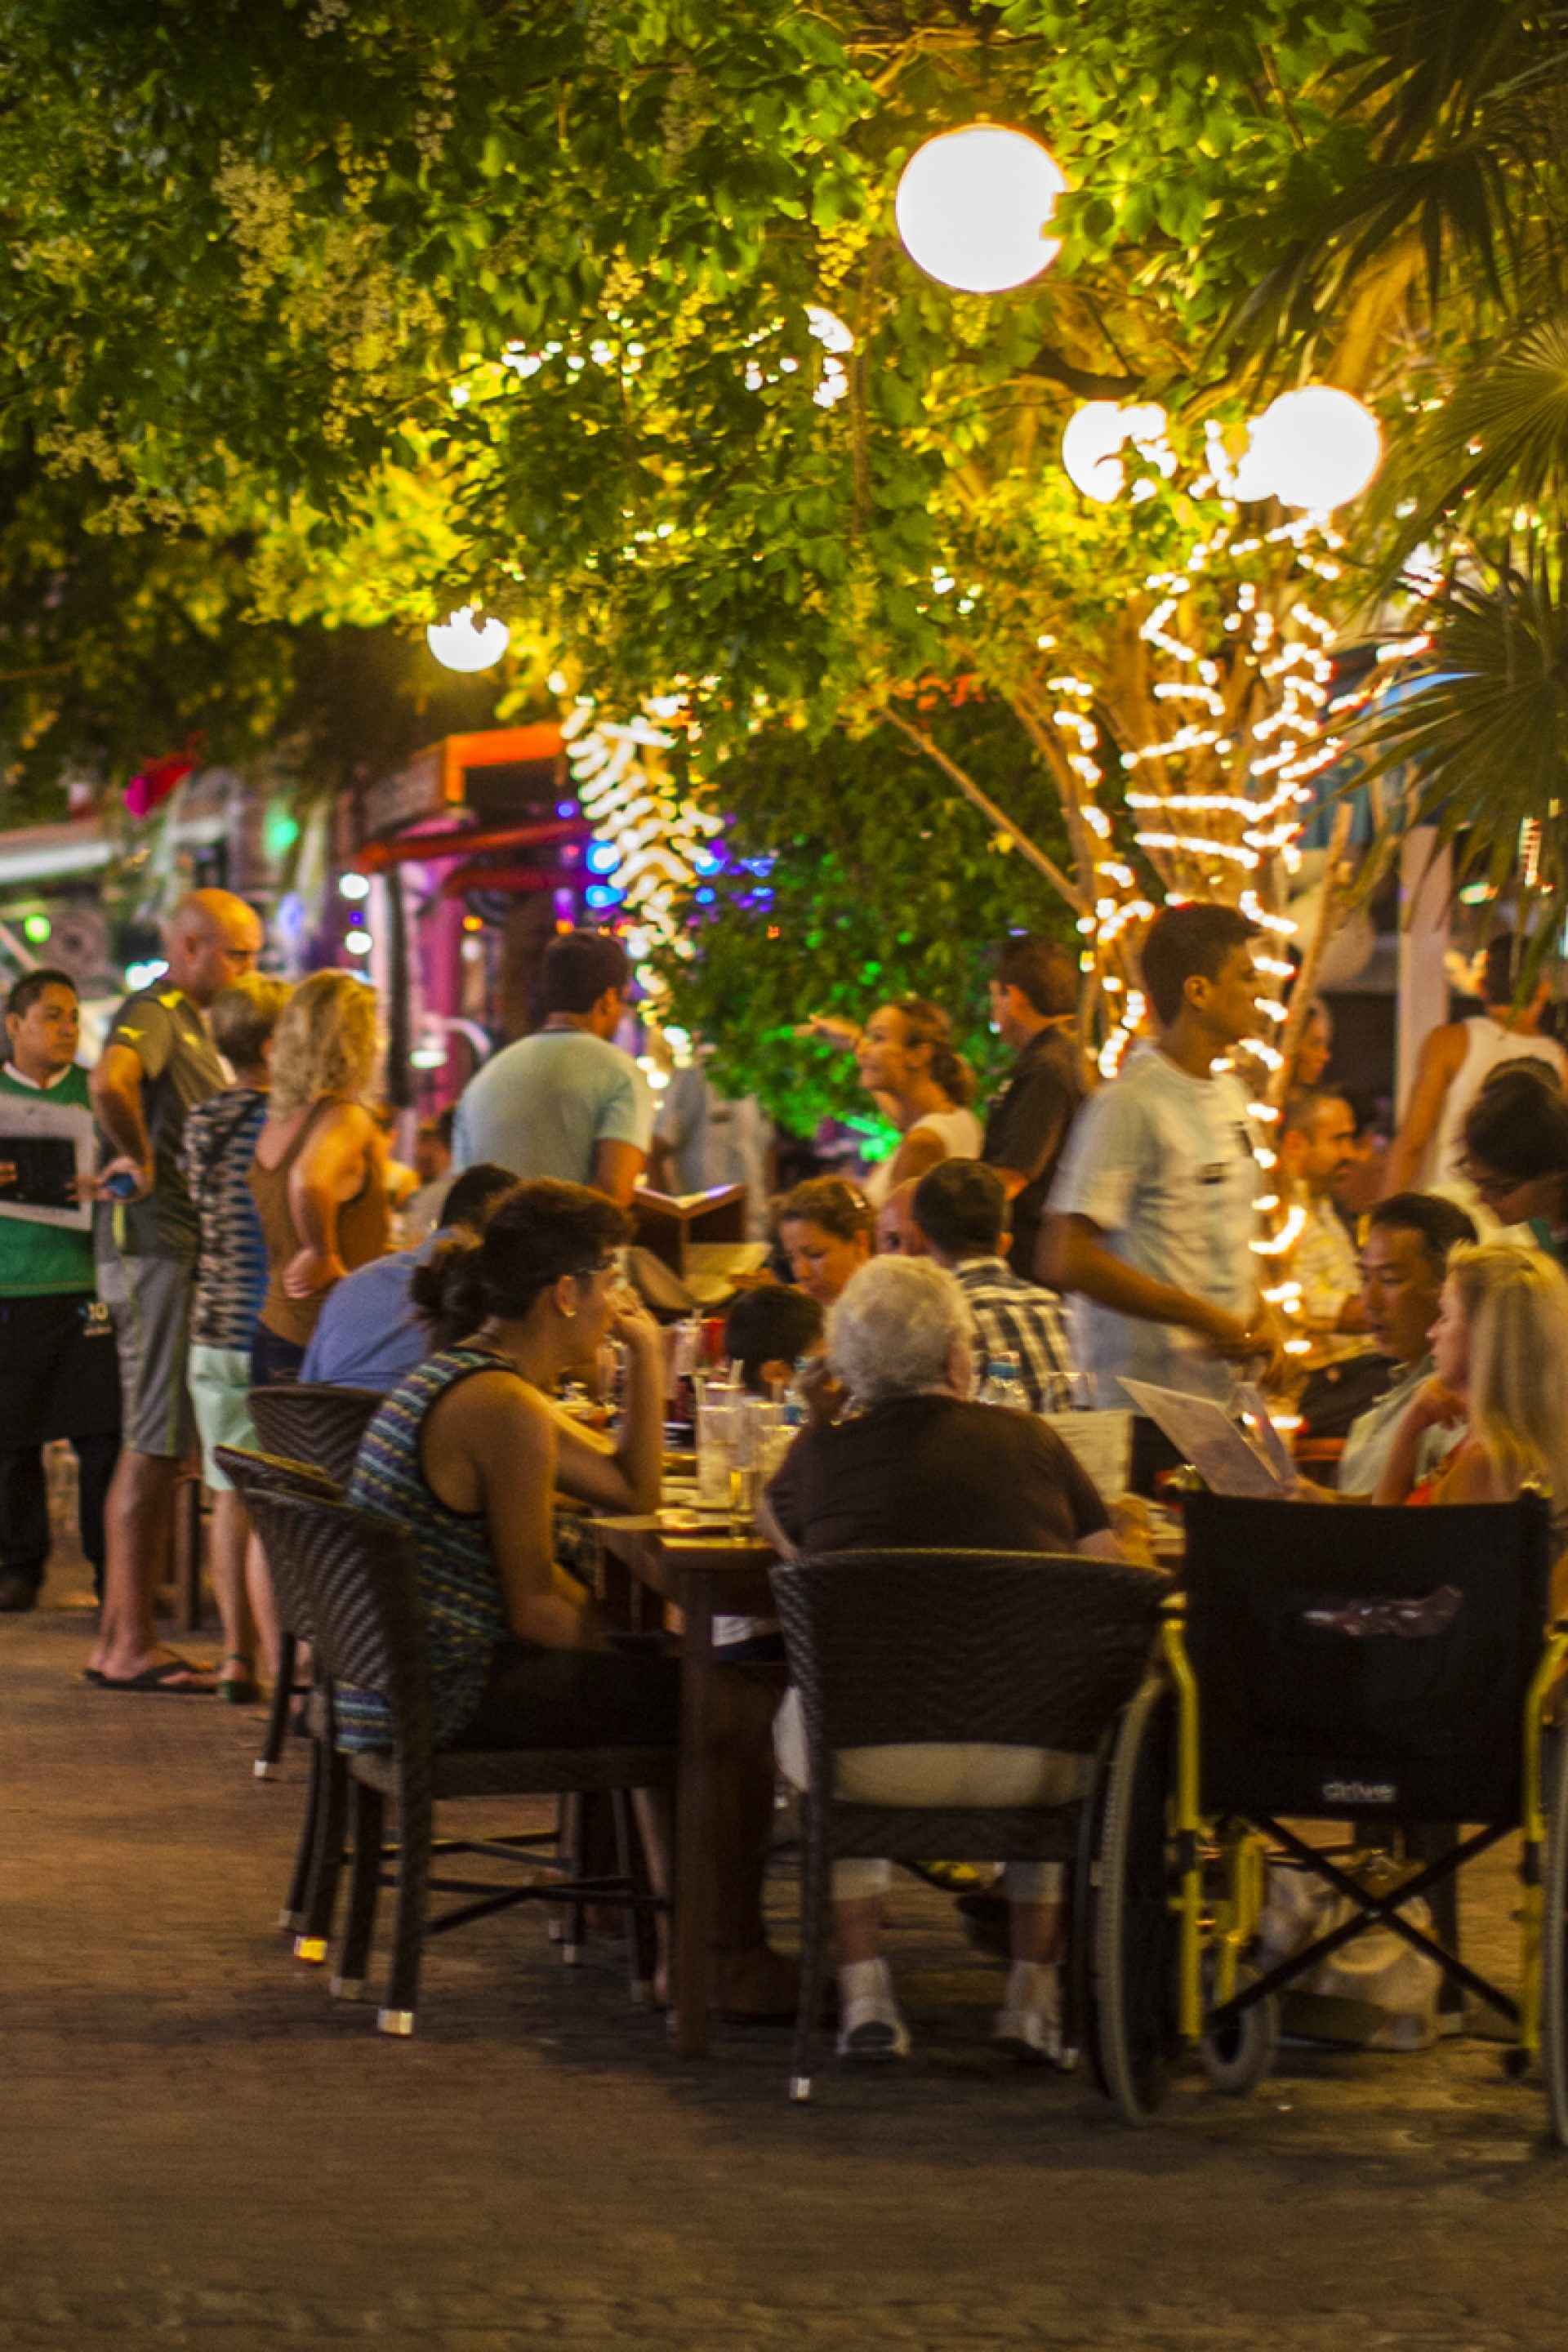 Street view with restaurants night life